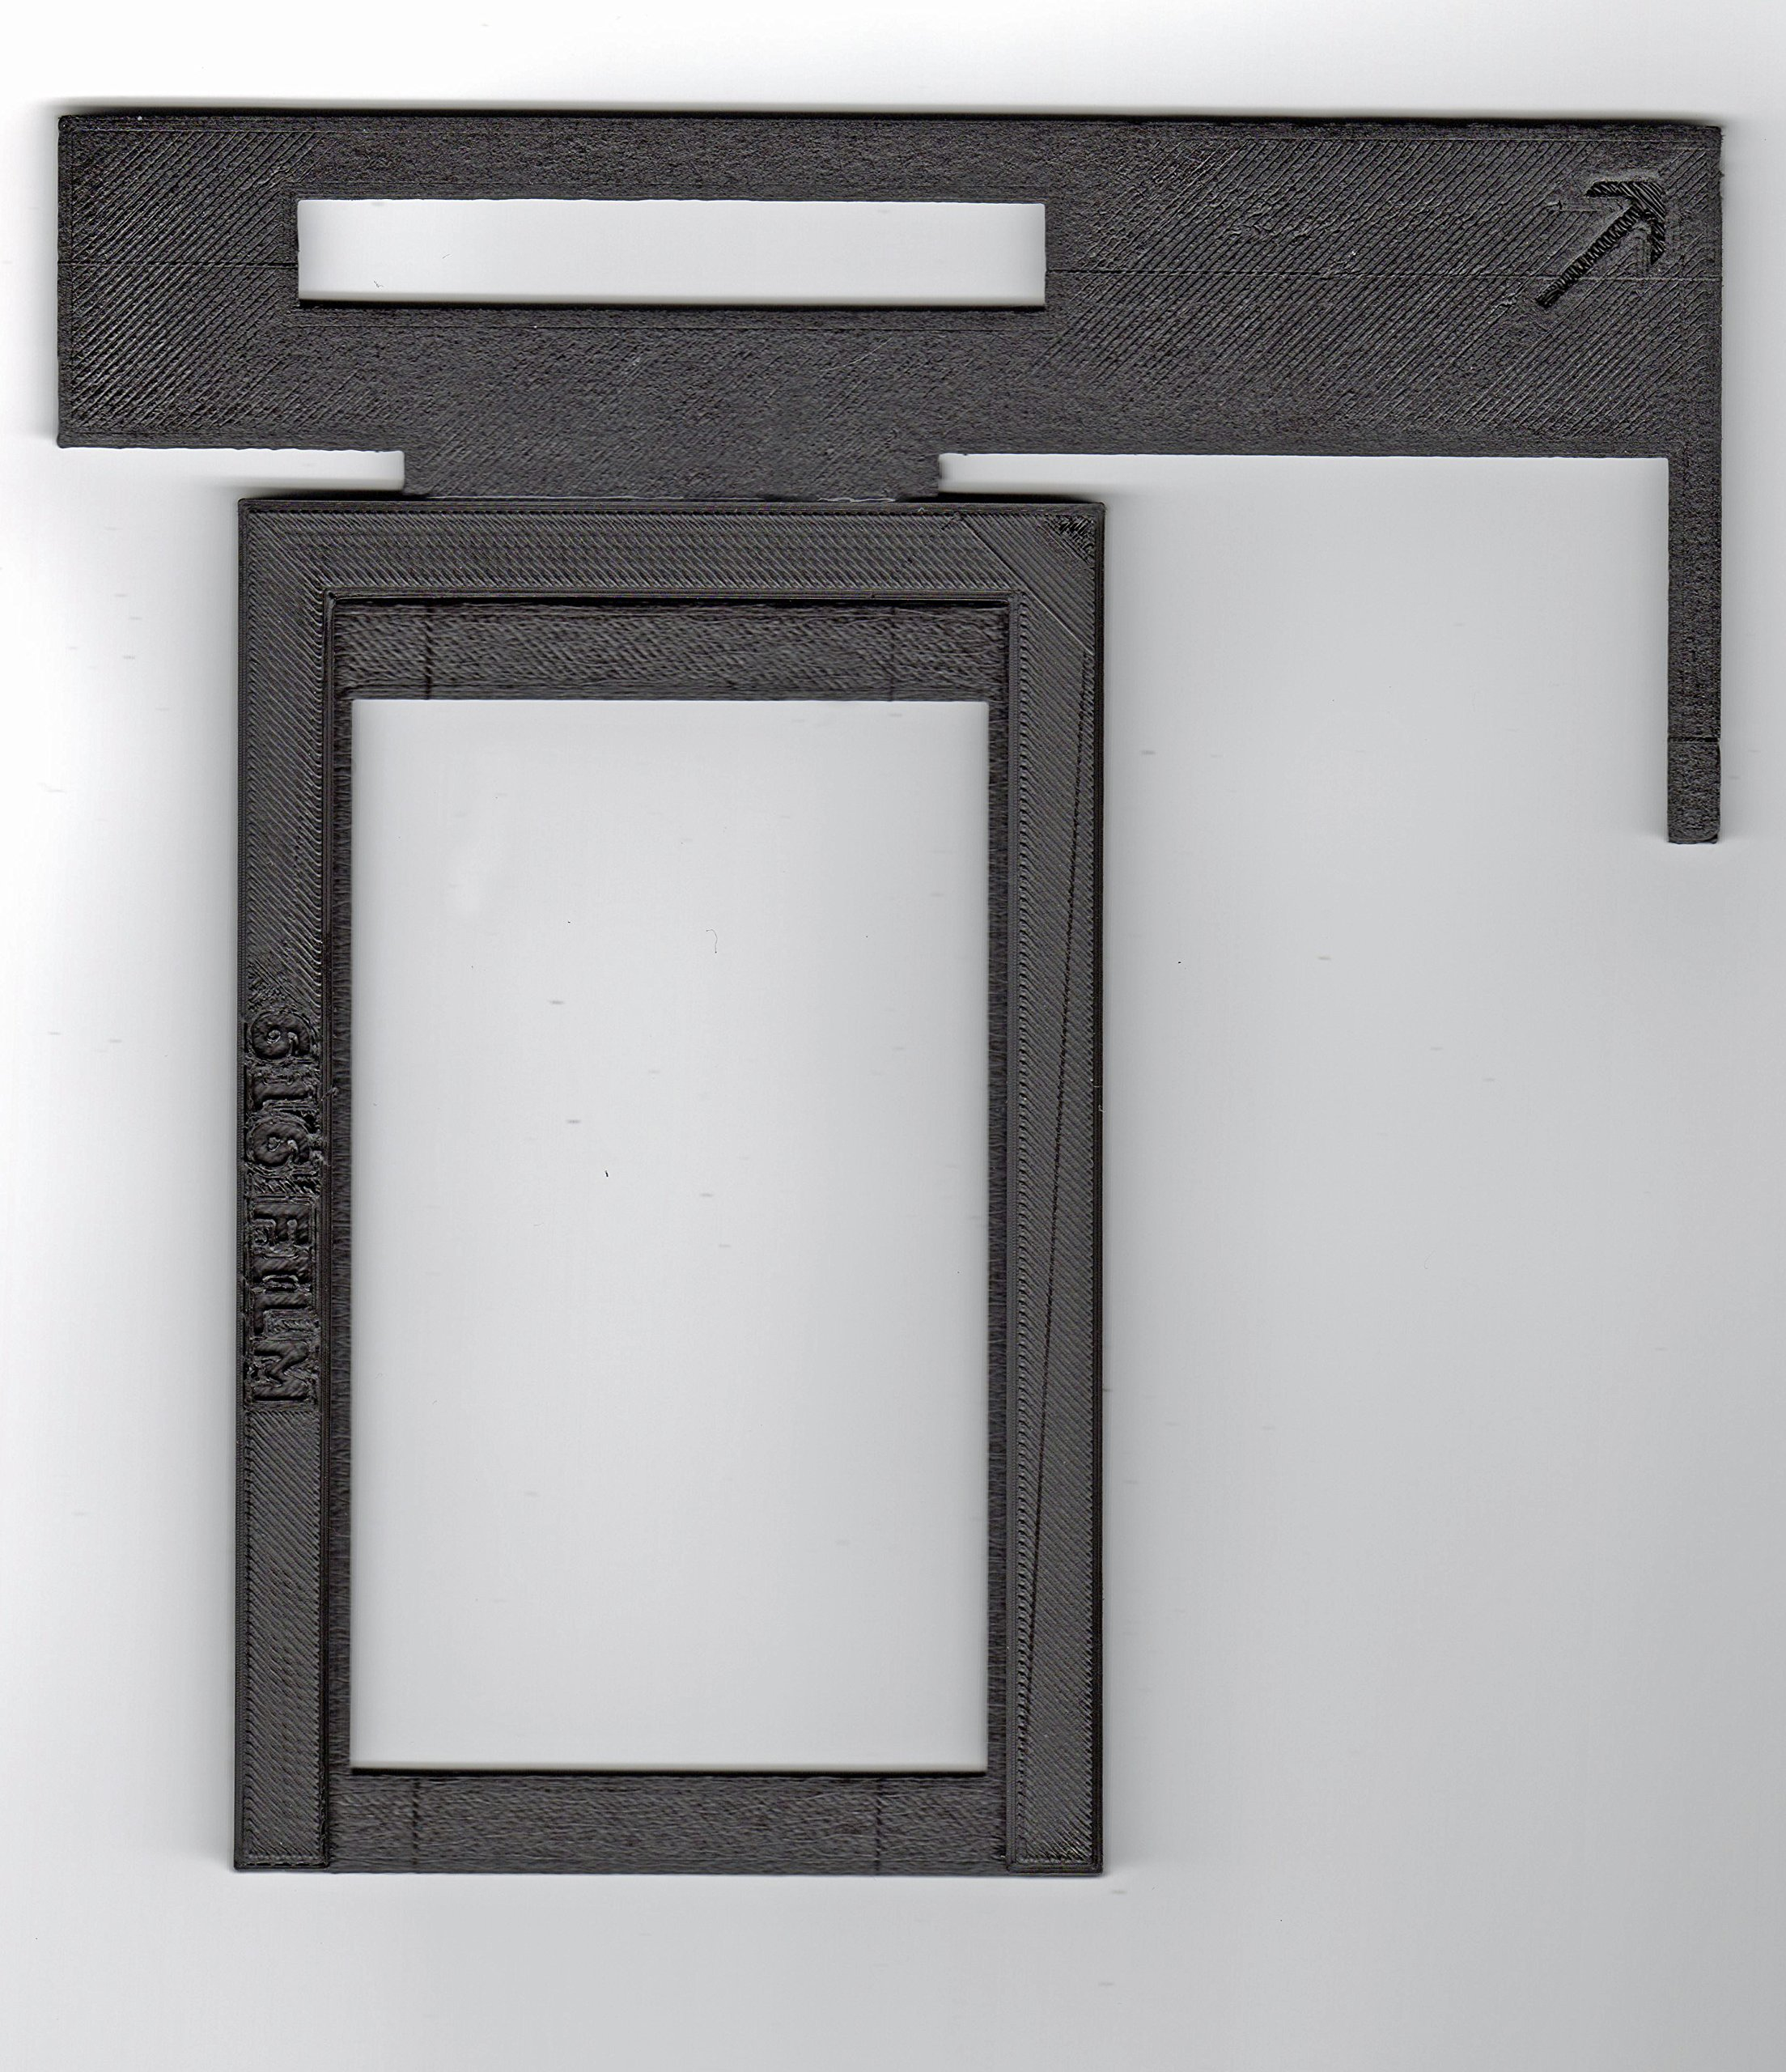 616/116 Film Holder Compatible with Canon CanoScan 8800F/9000F/9950 Scanners by Negative Solutions Film Holders